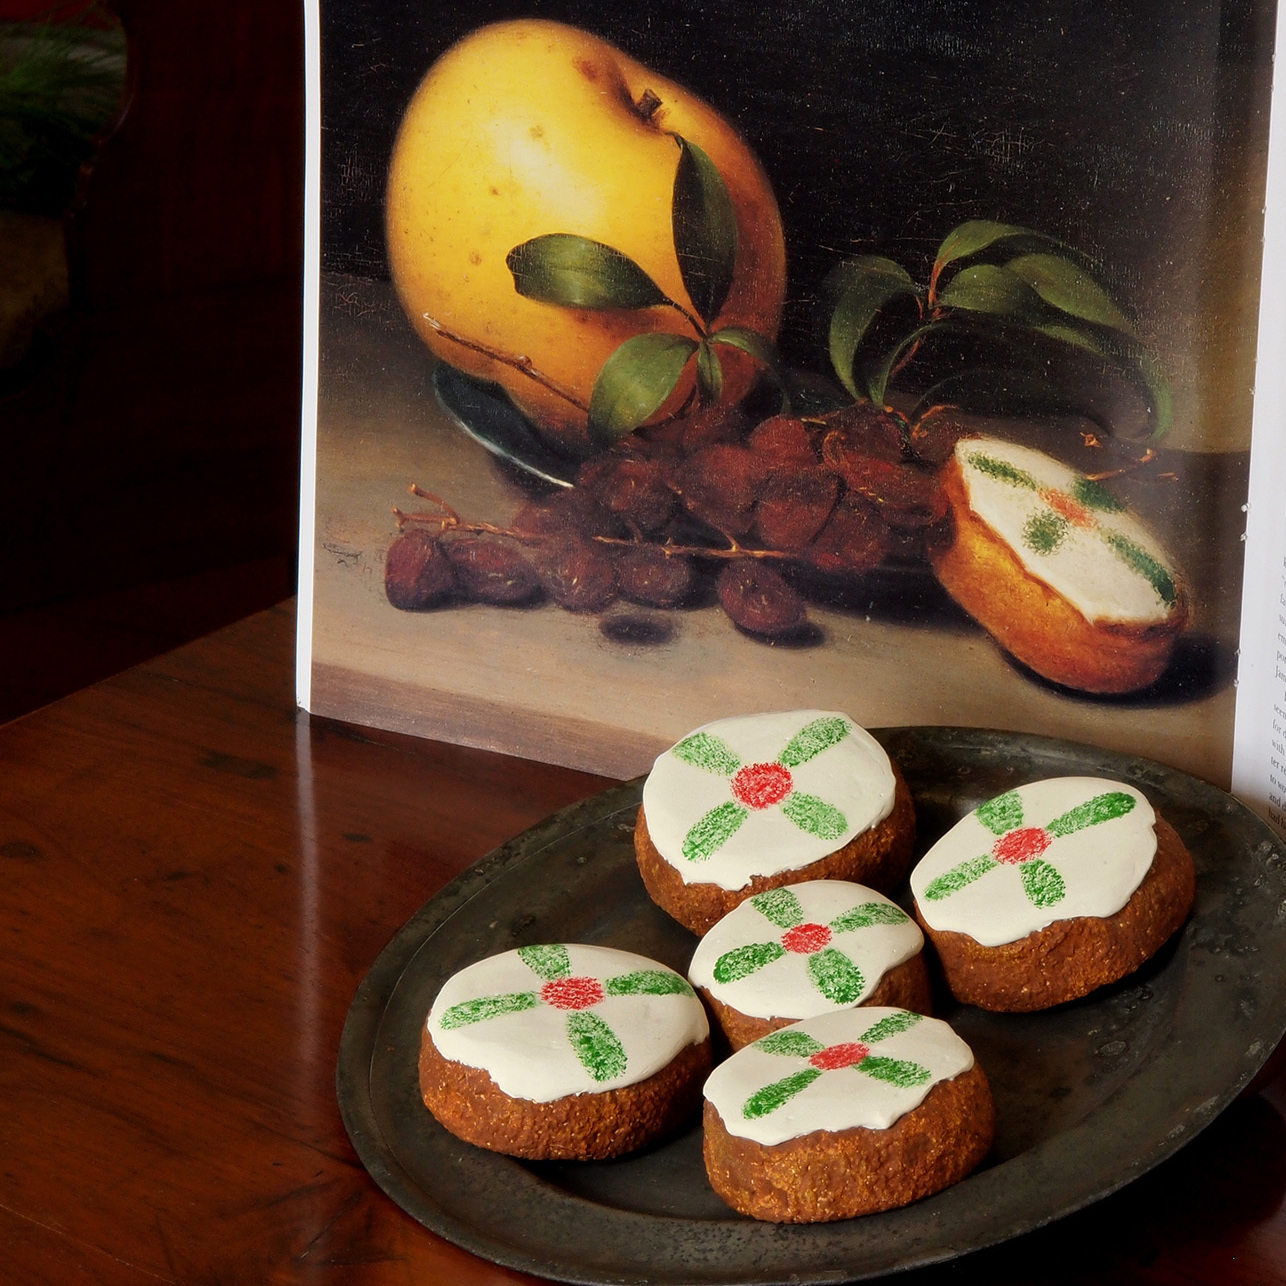 Cakes displayed with a reproduction of Raphaelle Peale's Still Life with Cake, from circa 1822